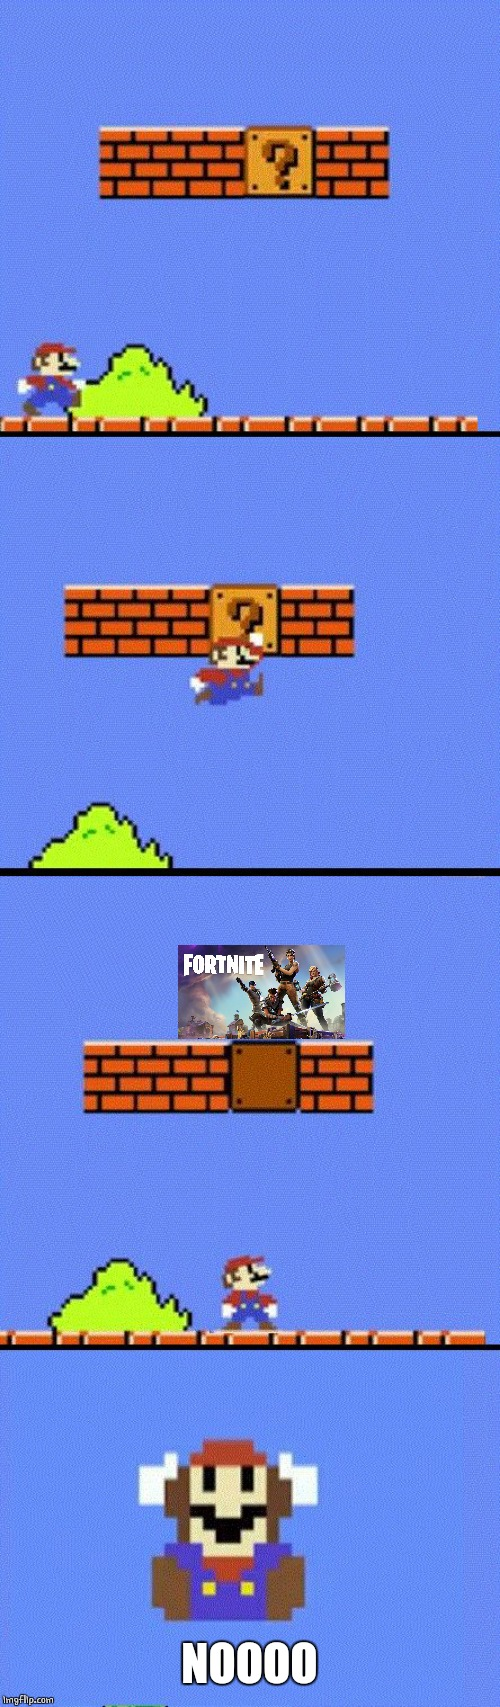 MARIO DON'T PLAY THAT |  NOOOO | image tagged in mario dies,fortnite,video games,super mario | made w/ Imgflip meme maker